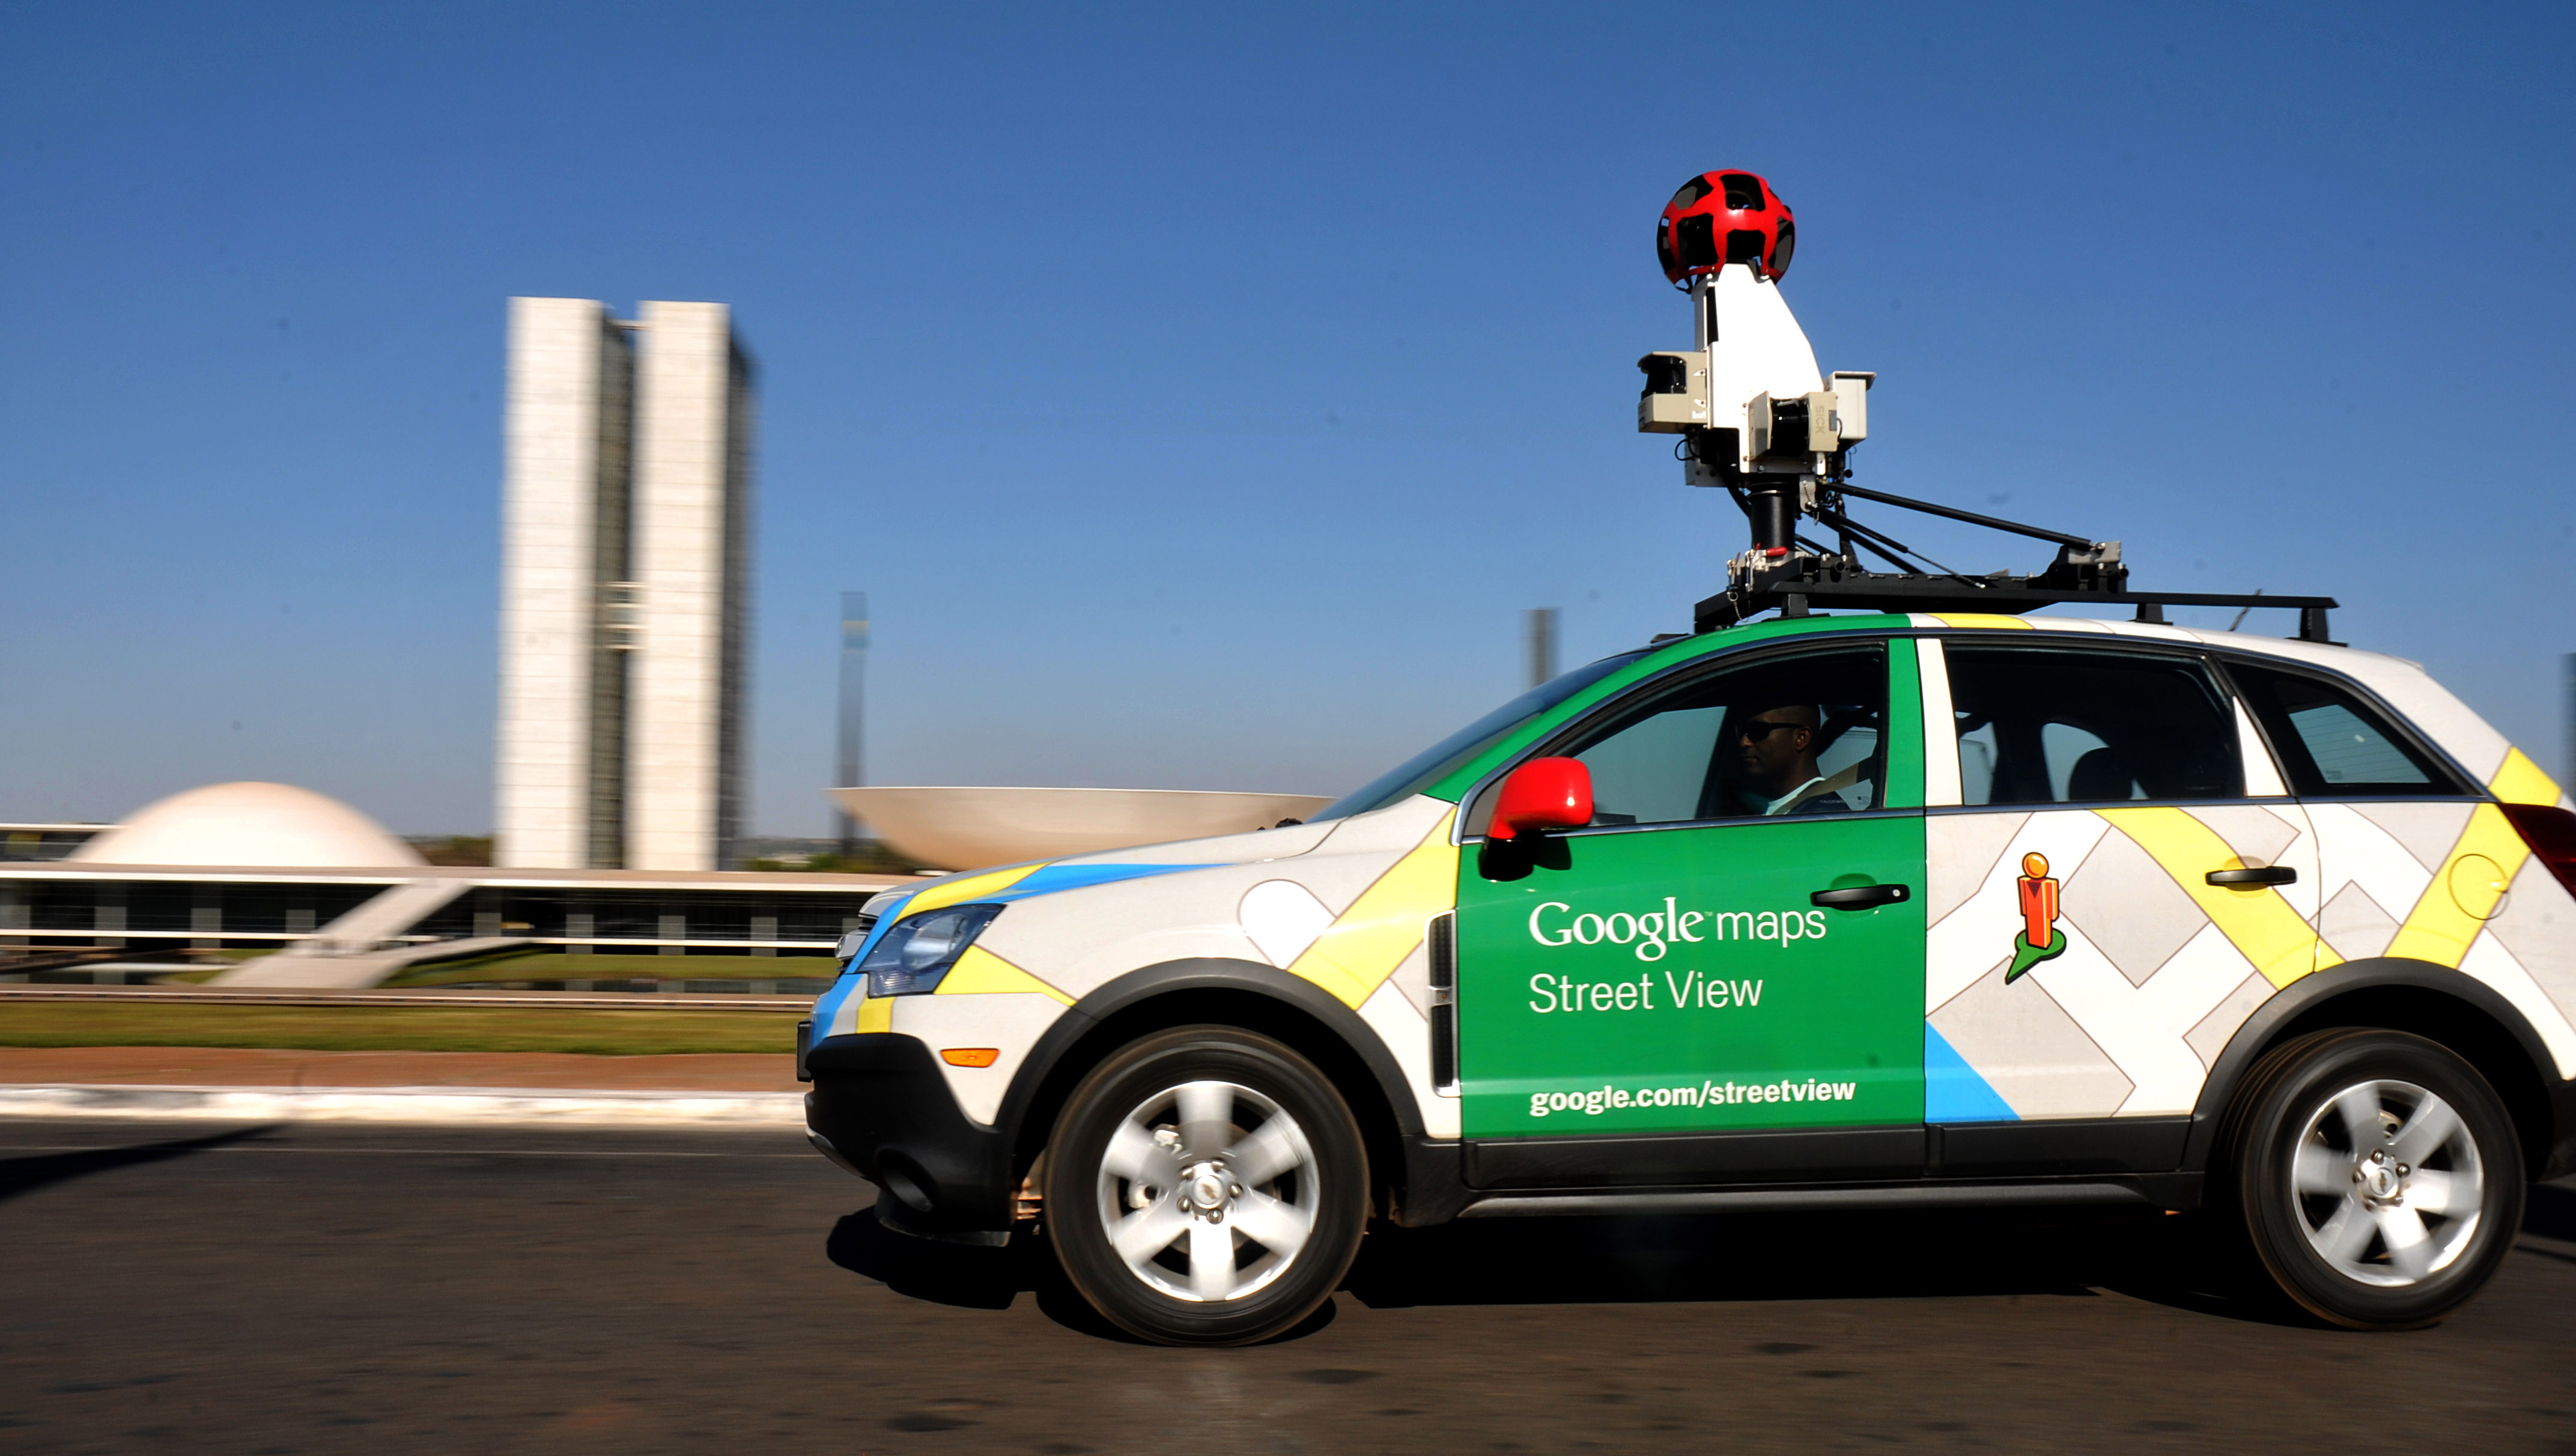 Google now lets you create your own Street View maps using Photo Sphere or your dSLR camera